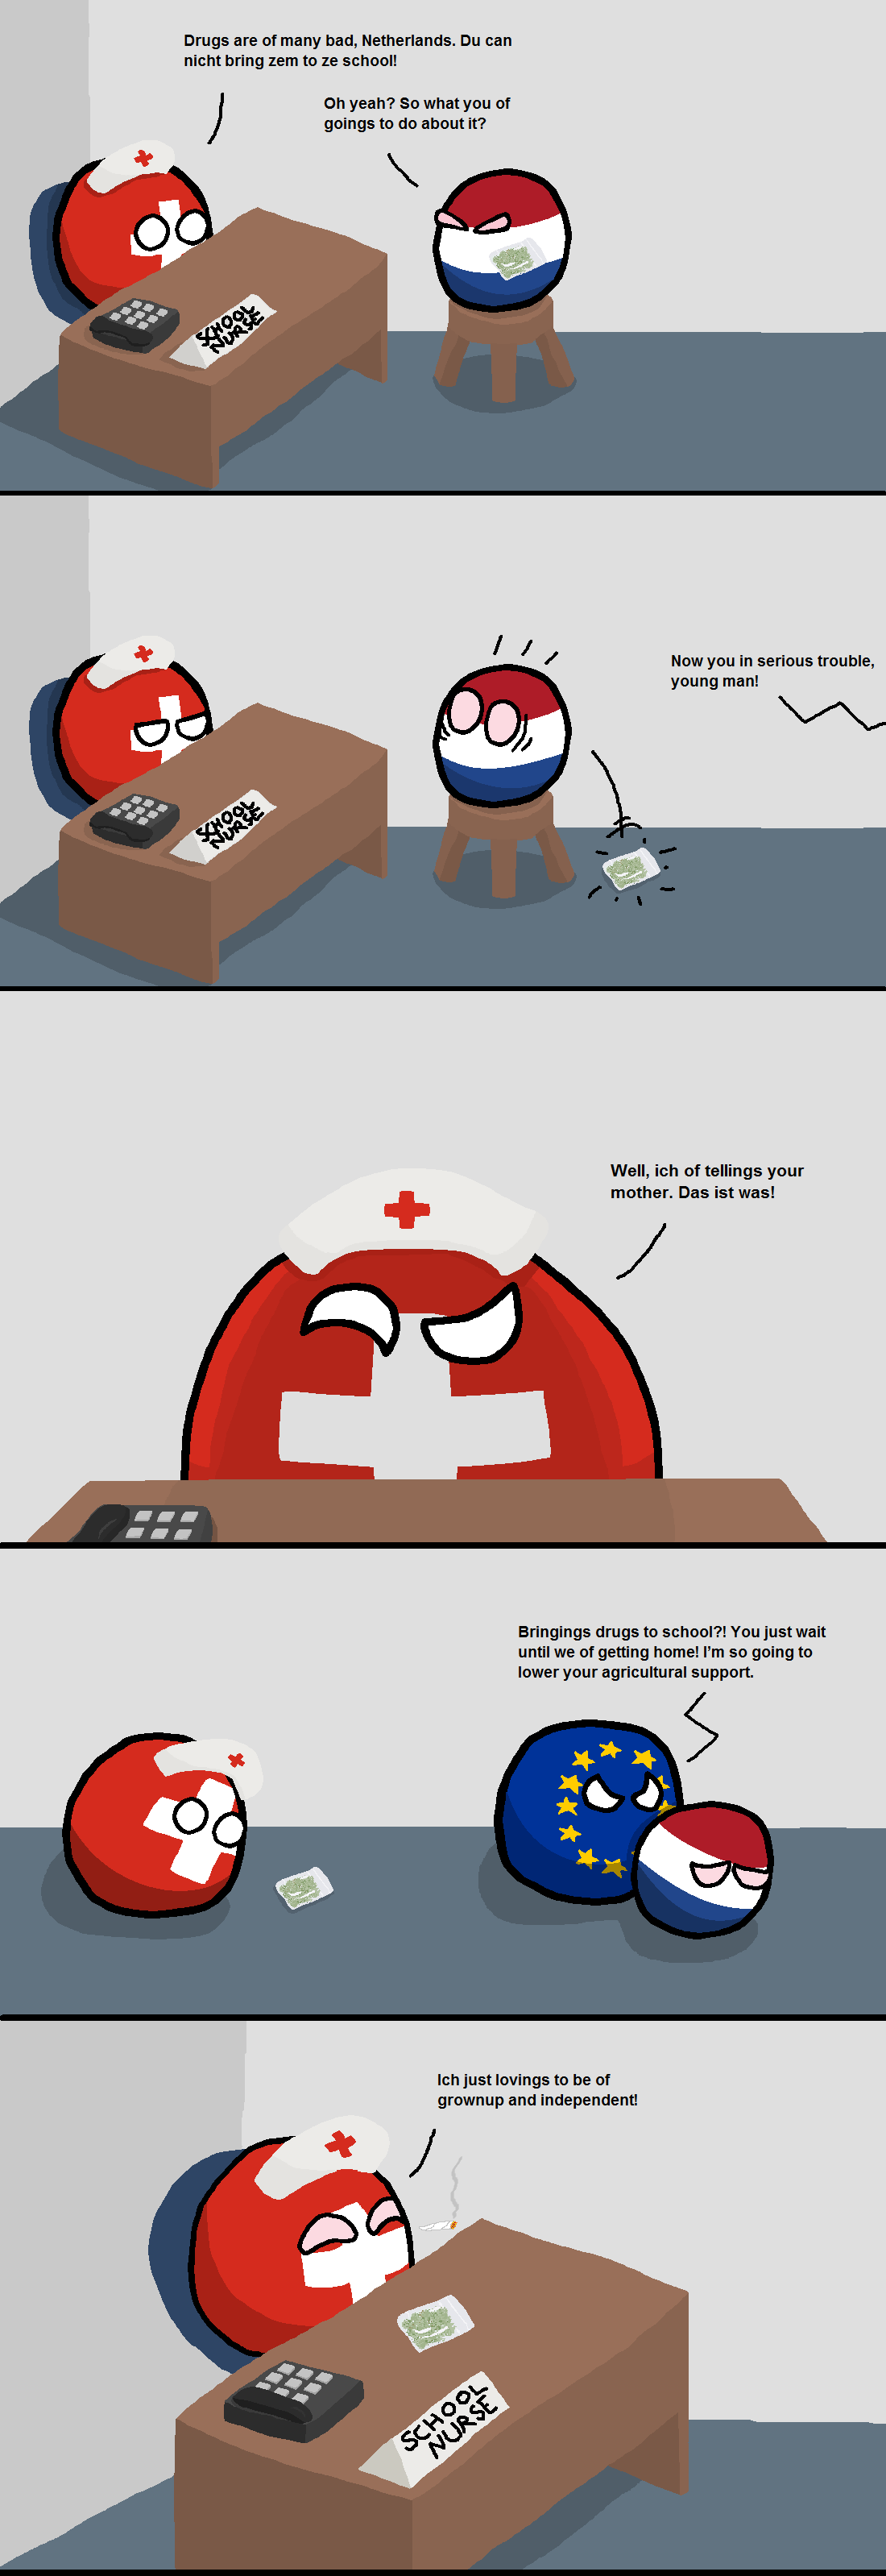 Nurse Switzerland